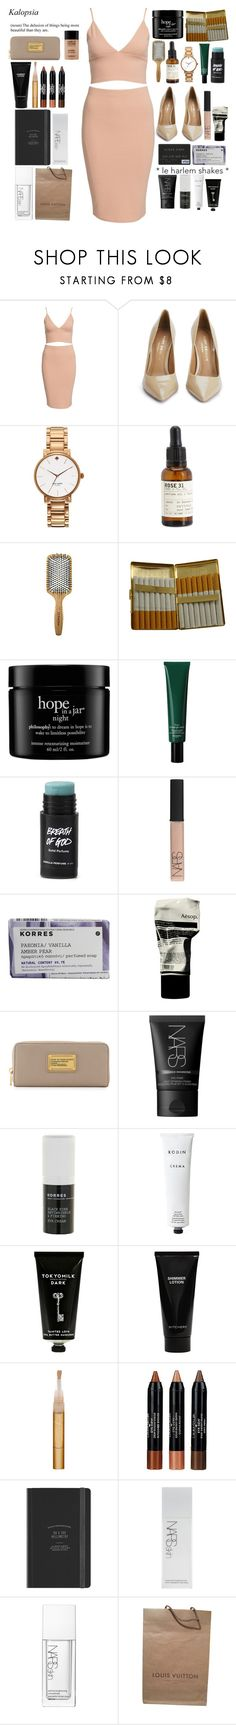 """Untitled #143"" by illestmonroe ❤ liked on Polyvore featuring Kurt Geiger, Kate Spade, Le Labo, Sephora Collection, KING, philosophy, Hermès, NARS Cosmetics, Korres and Aesop"